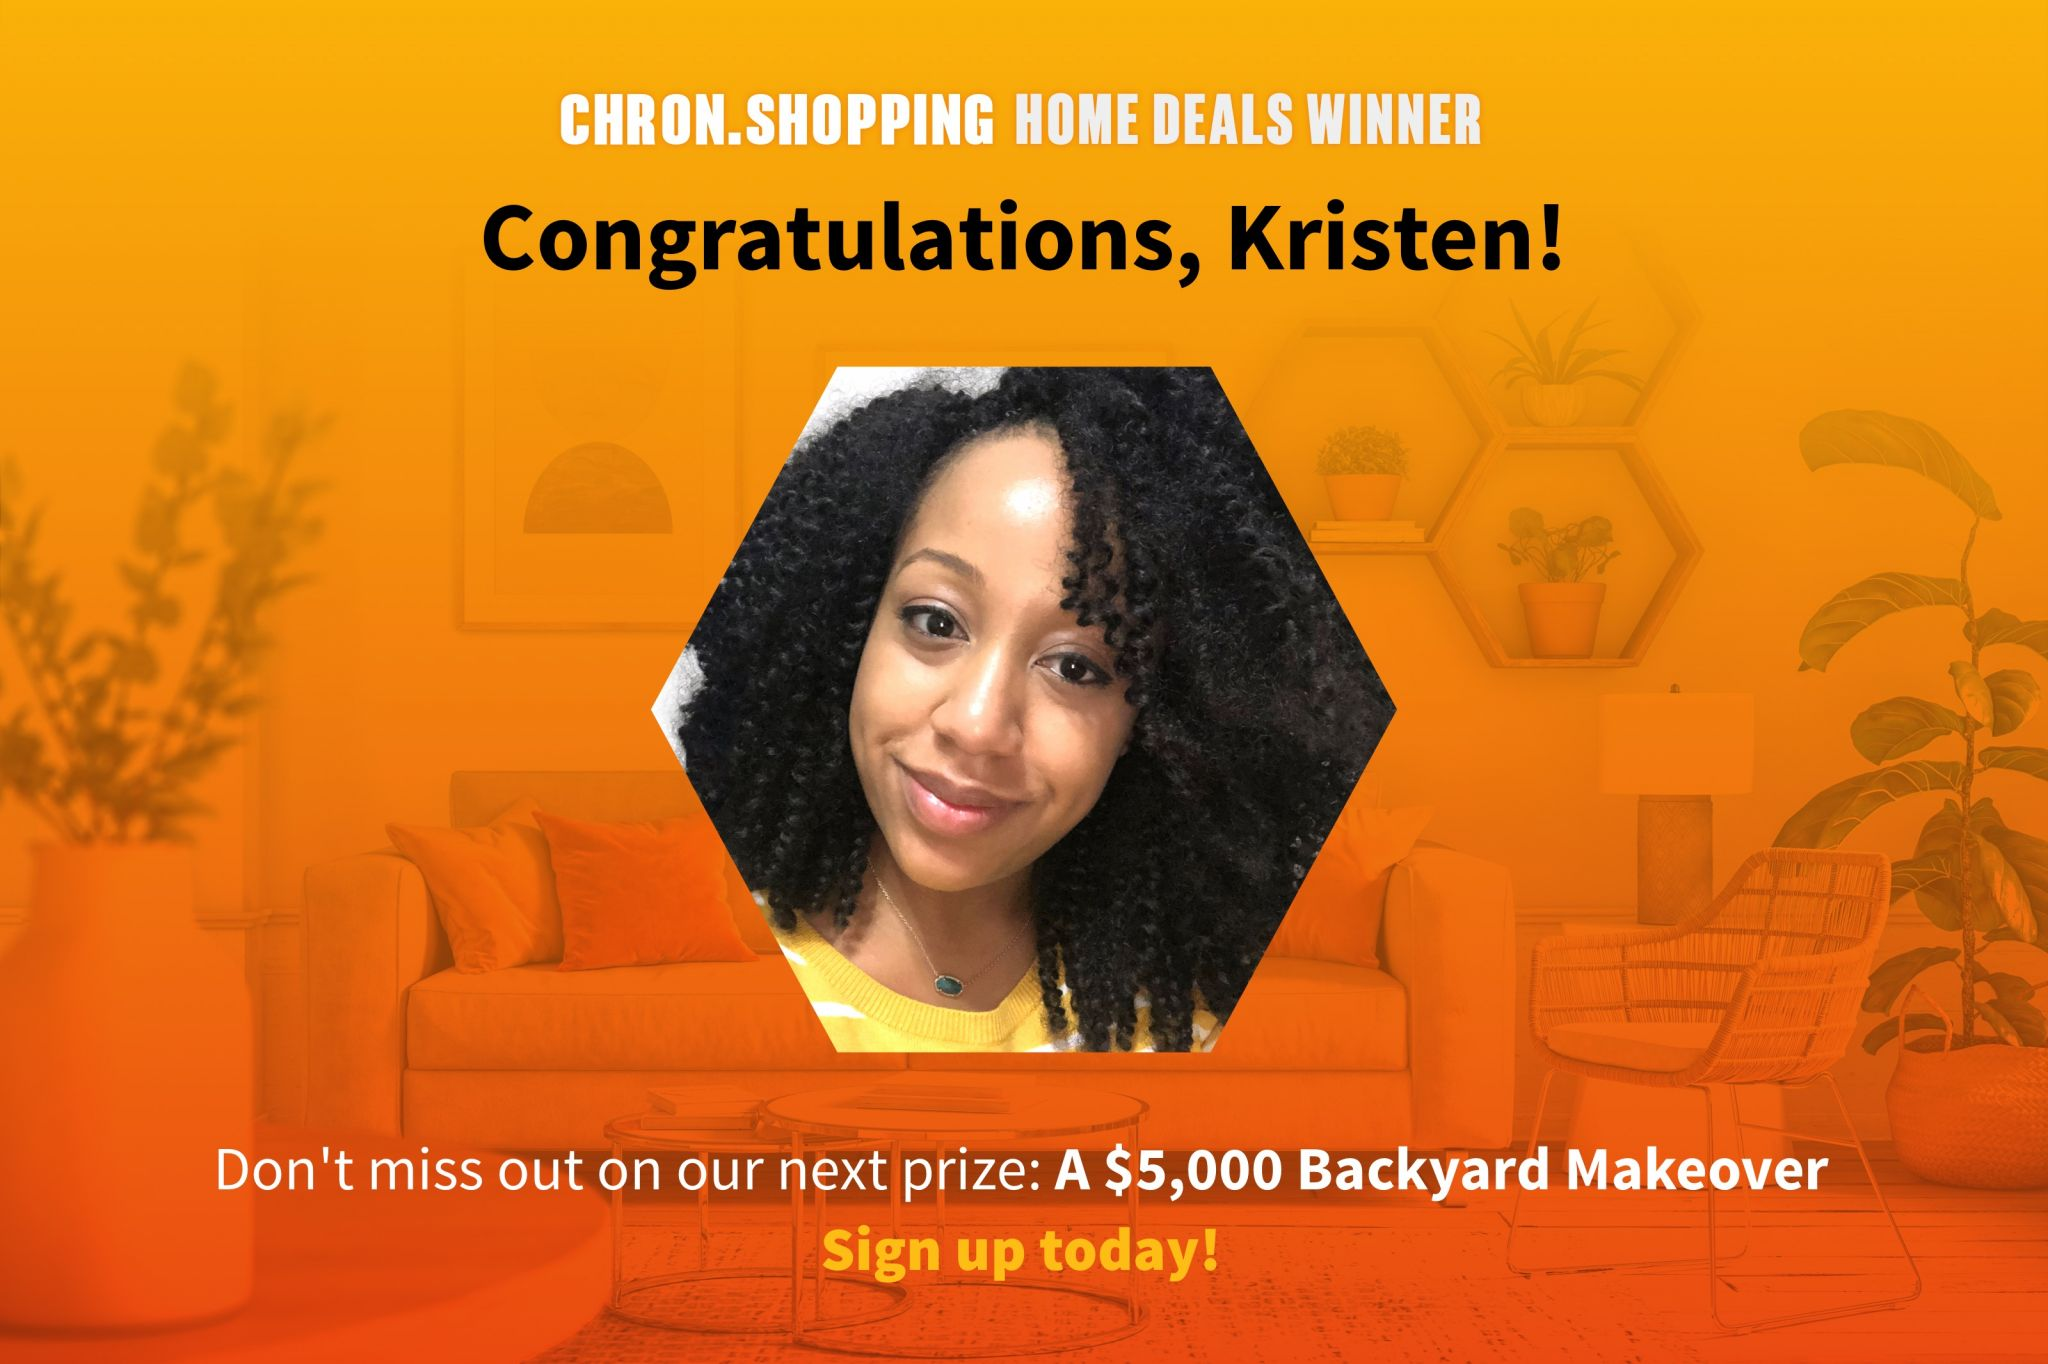 Kristen won a $1,000 gift card to The Container Store. Sign up for our Home Deals Digest and your chance to win our next prize!